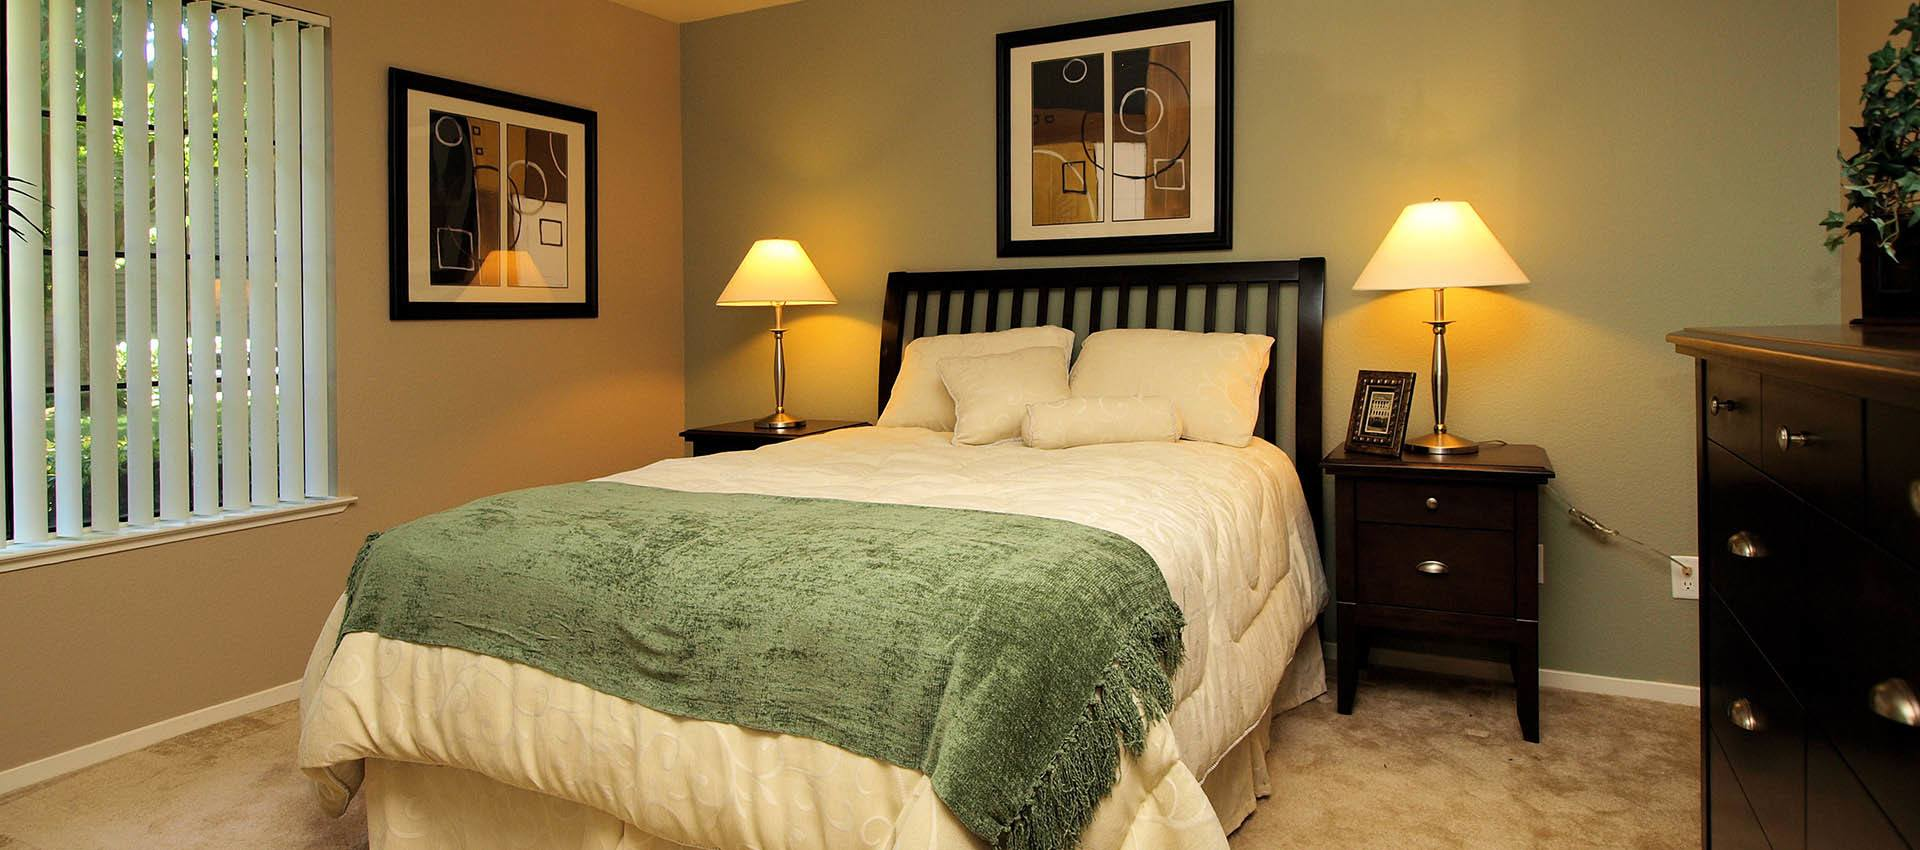 Master Bedroom at Hidden Lake Condominium Rentals in Sacramento, California